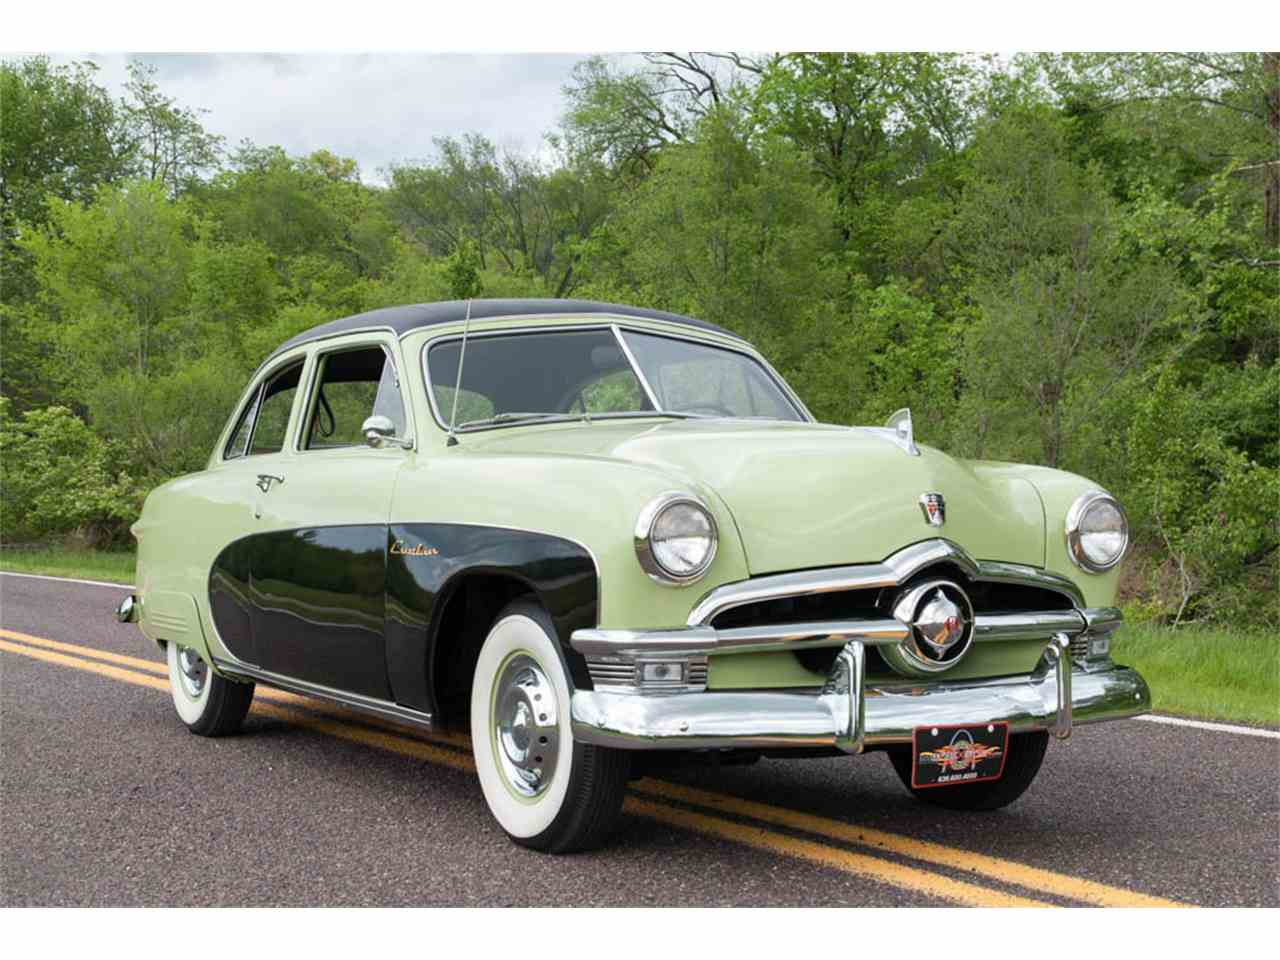 Large Picture of Classic '50 Ford Crestliner Tudor Sedan located in Missouri - HO6T